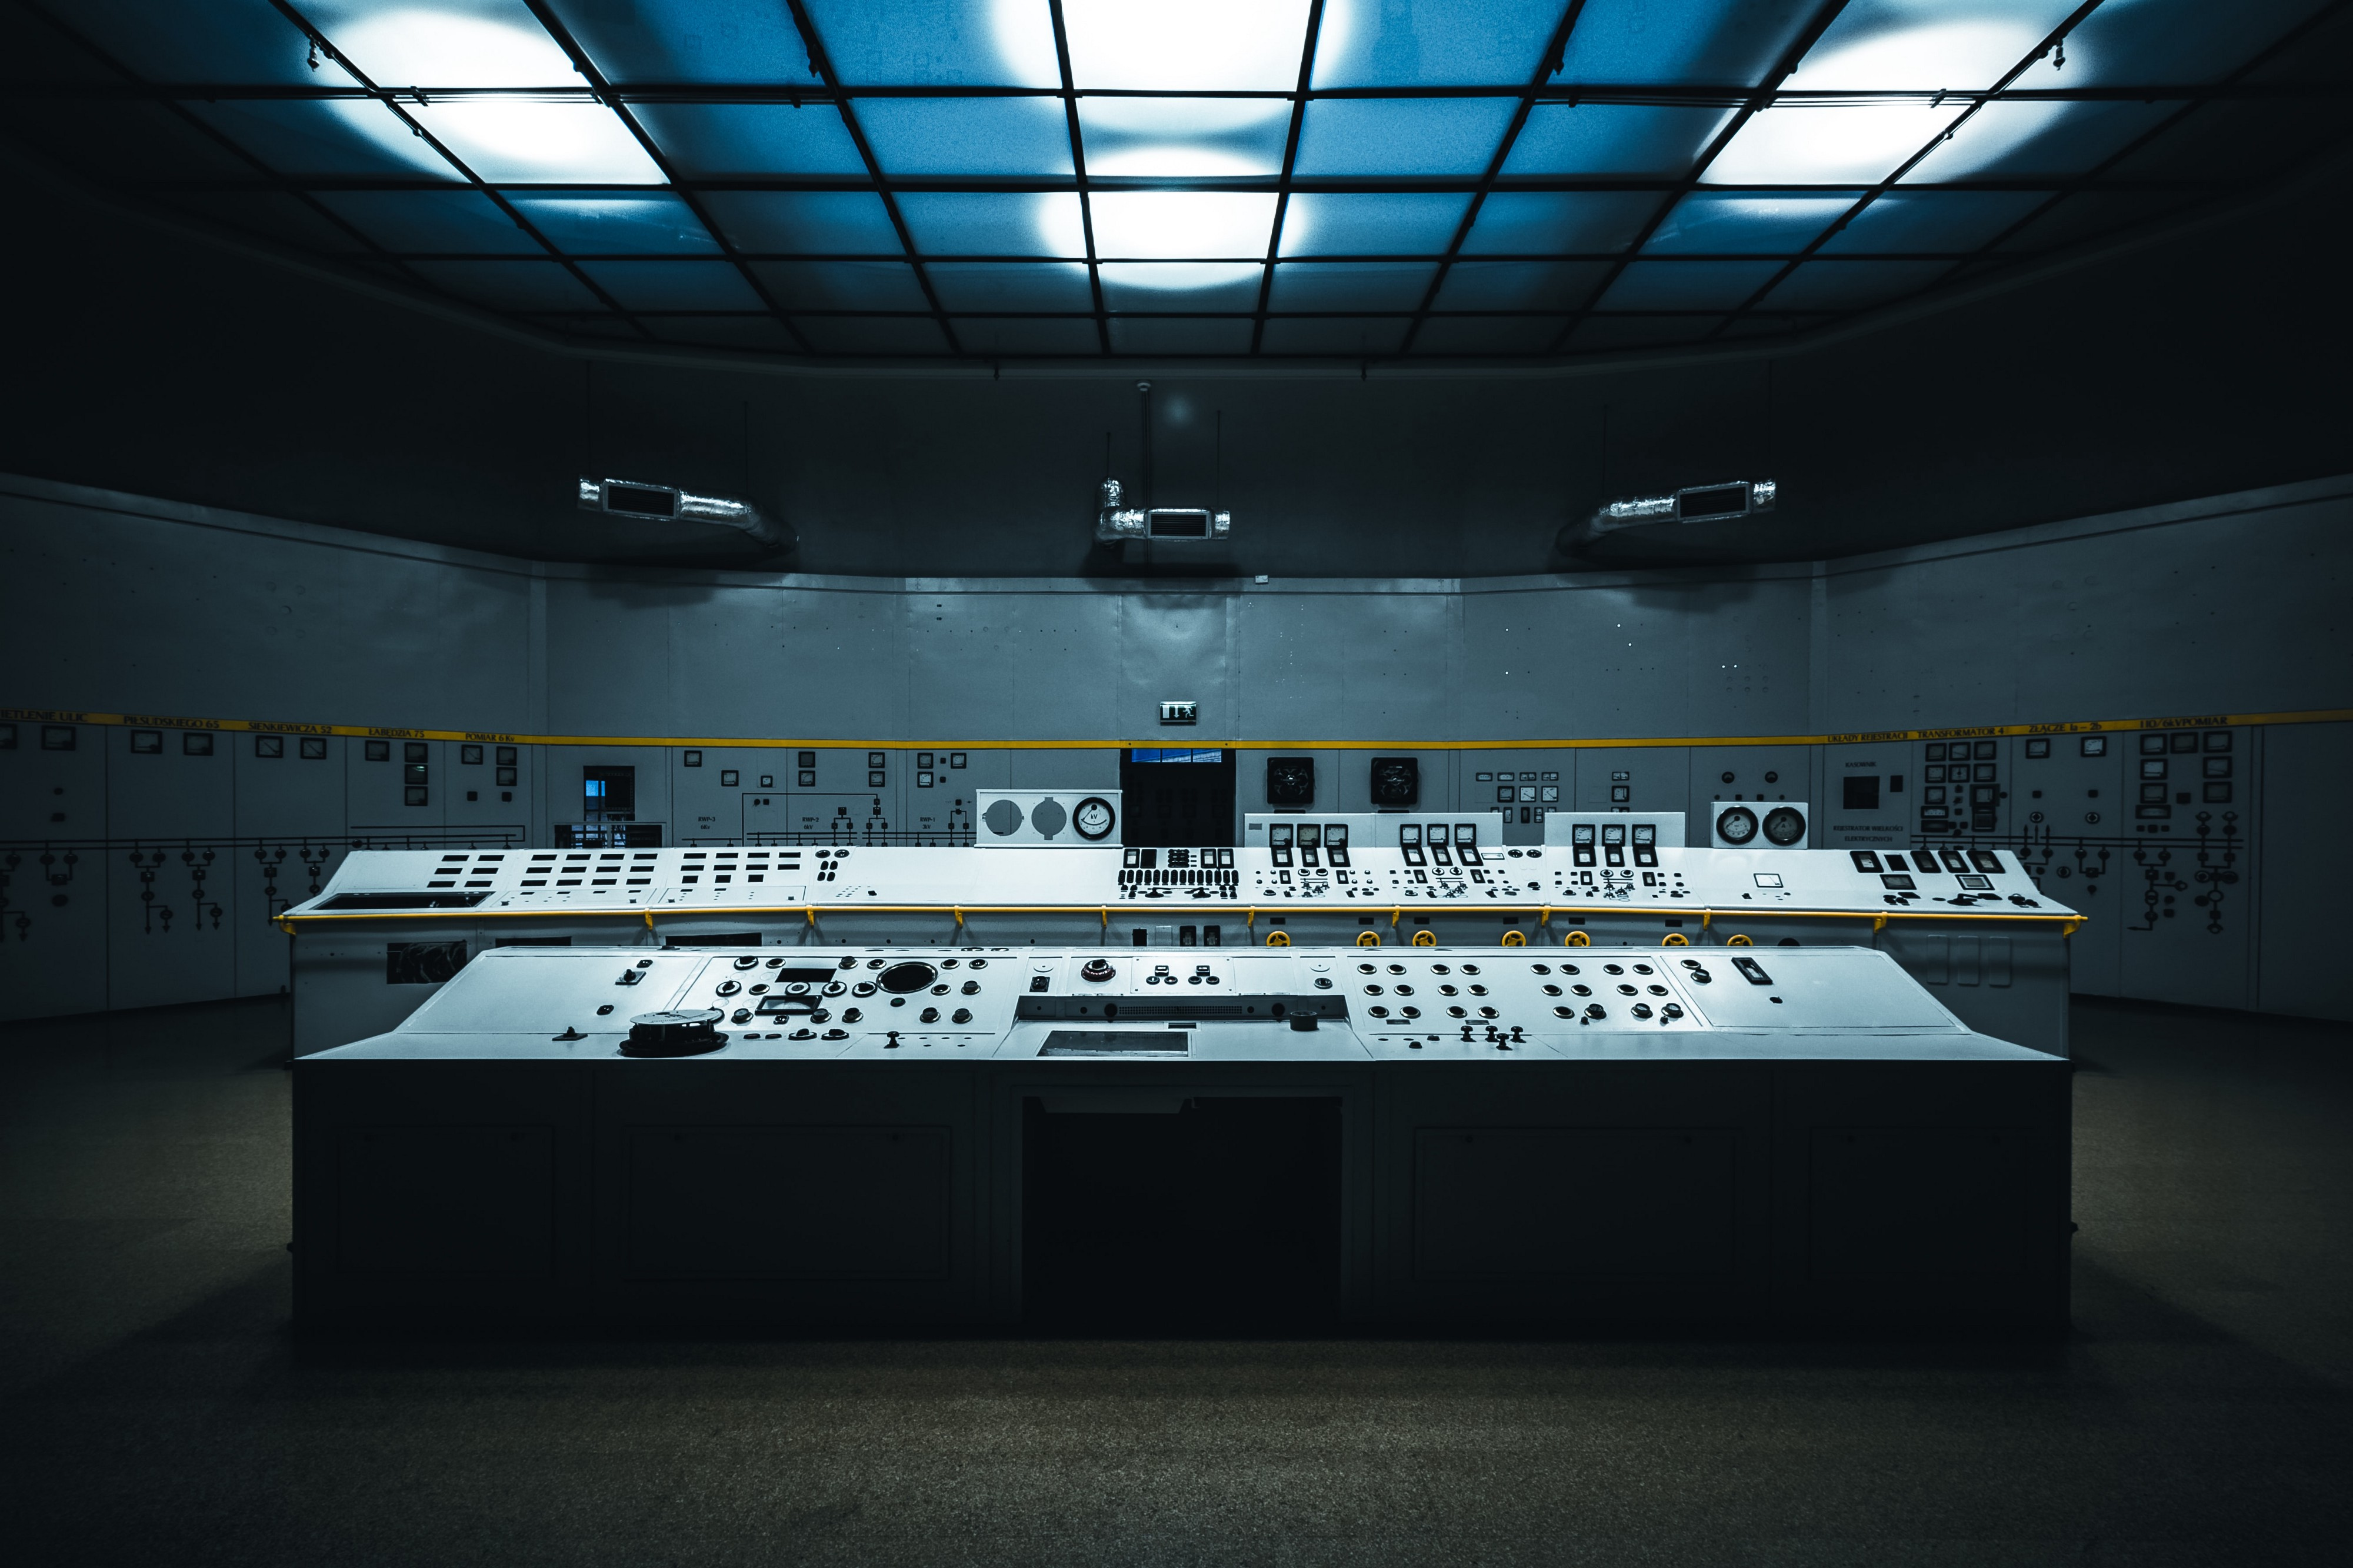 A dark and empty control room with digital controls and computer screens